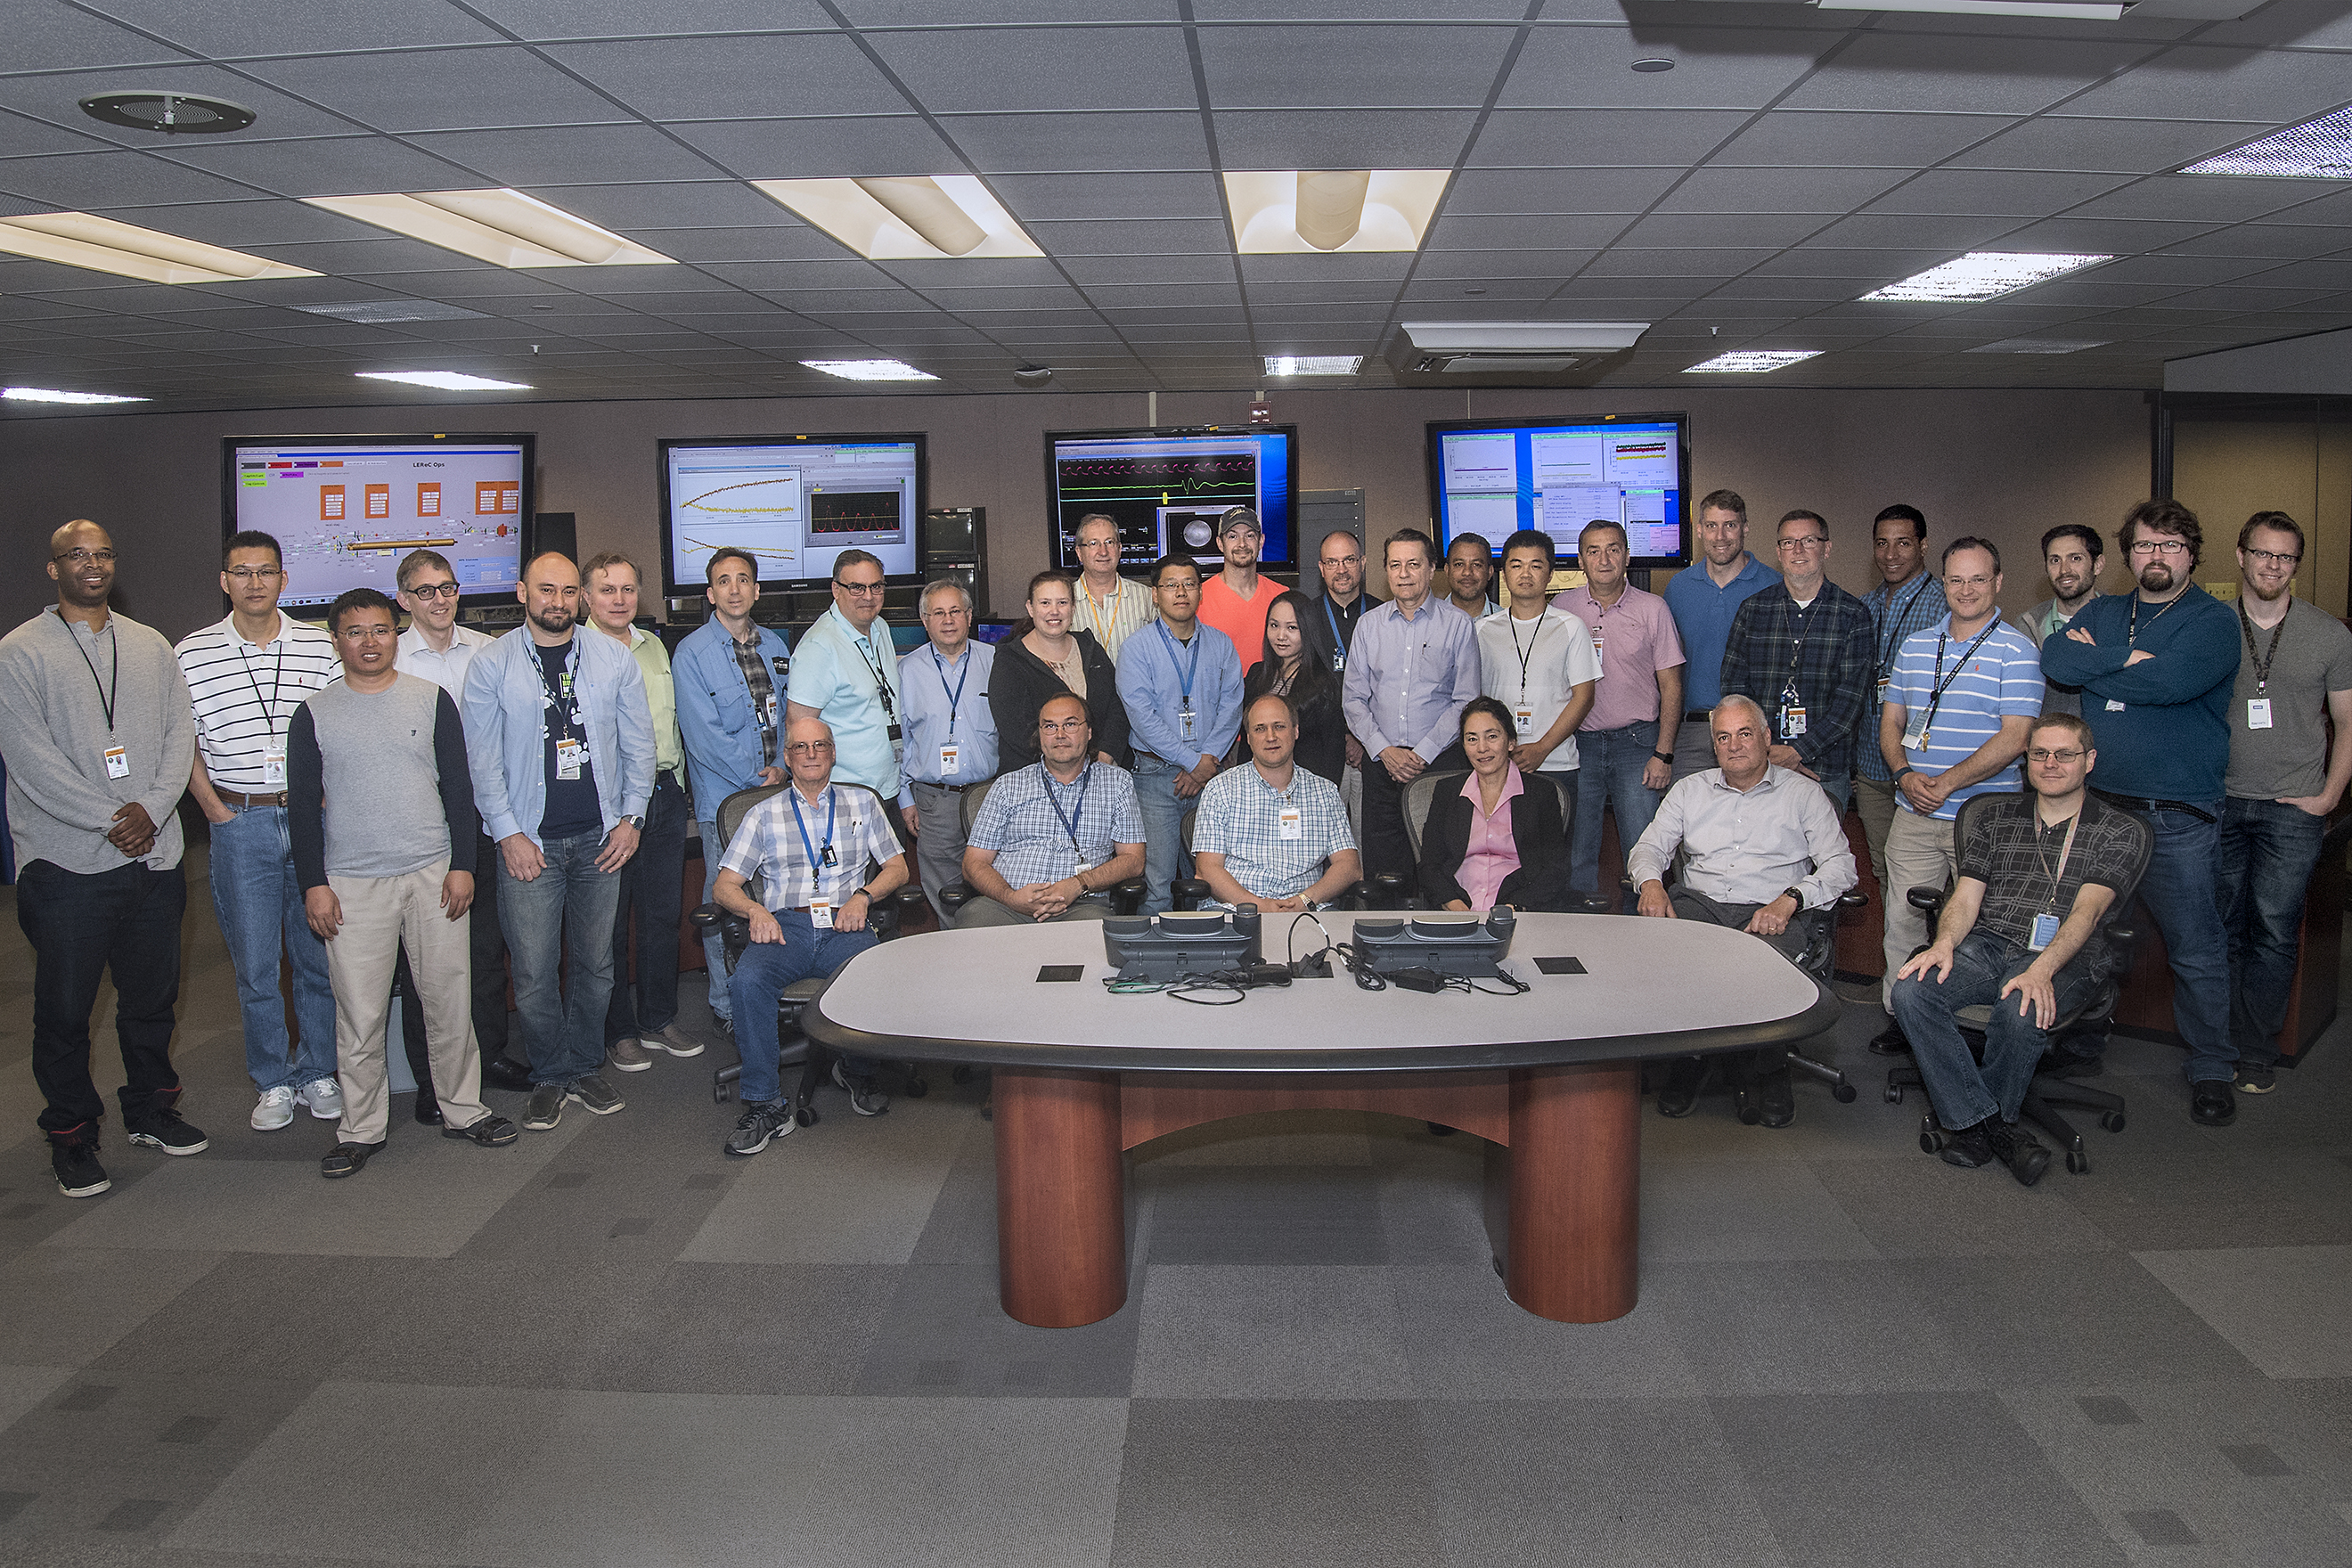 Some members of the Low Energy RHIC electron Cooling (LEReC) team in the Main Control Room of Brookhaven Lab's Collider-Accelerator Department. The team successfully demonstrated a bunched-beam electron cooling technique at RHIC, opening up the possibility of applying this technique to produce high-quality ion beams at high energies.